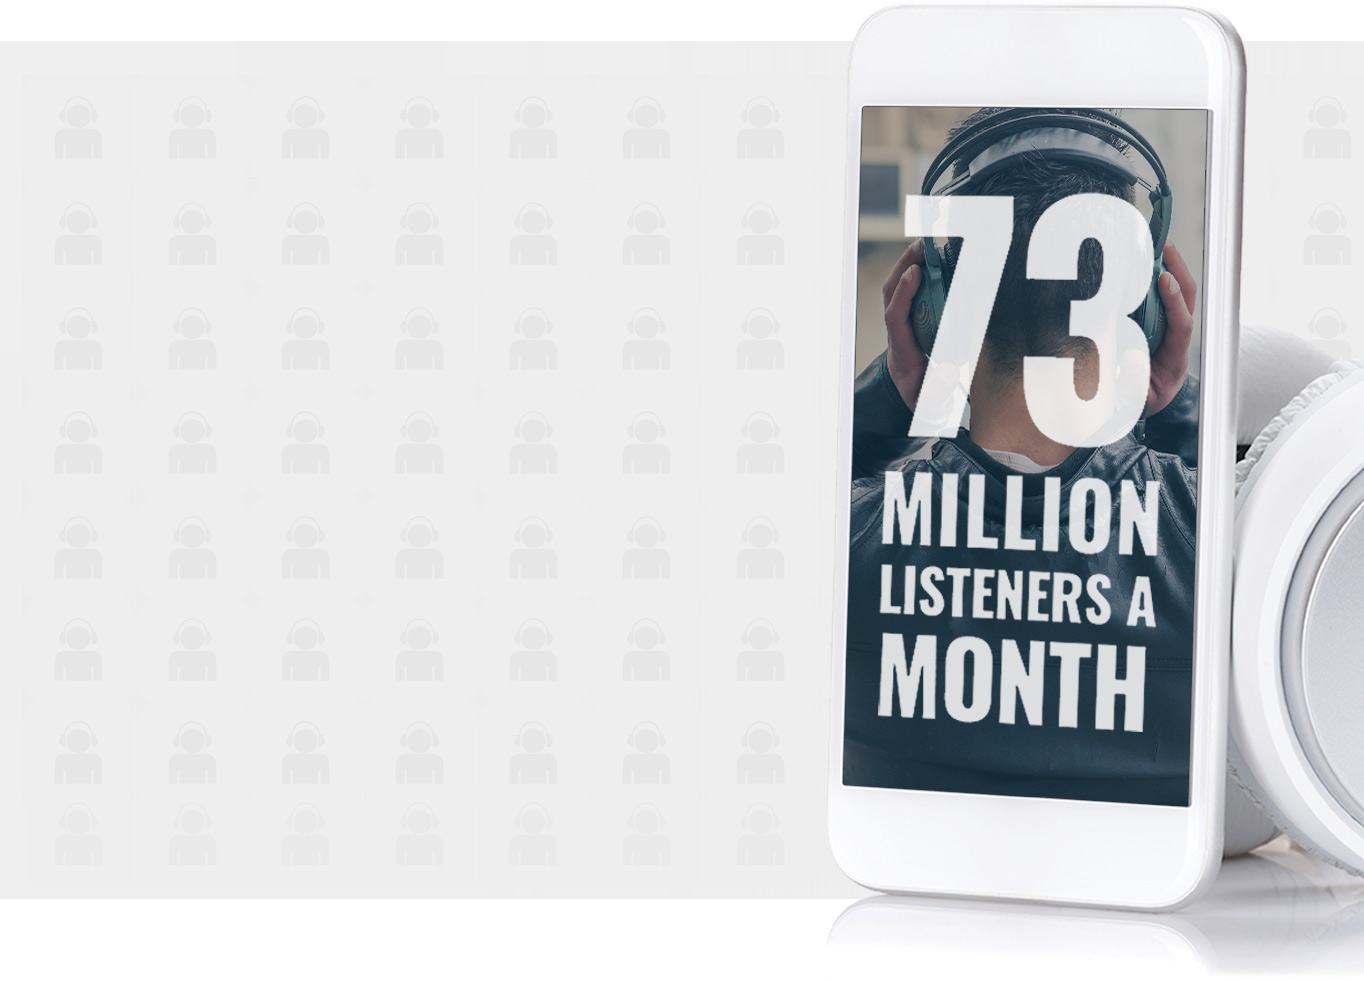 73 Million Listeners a Month